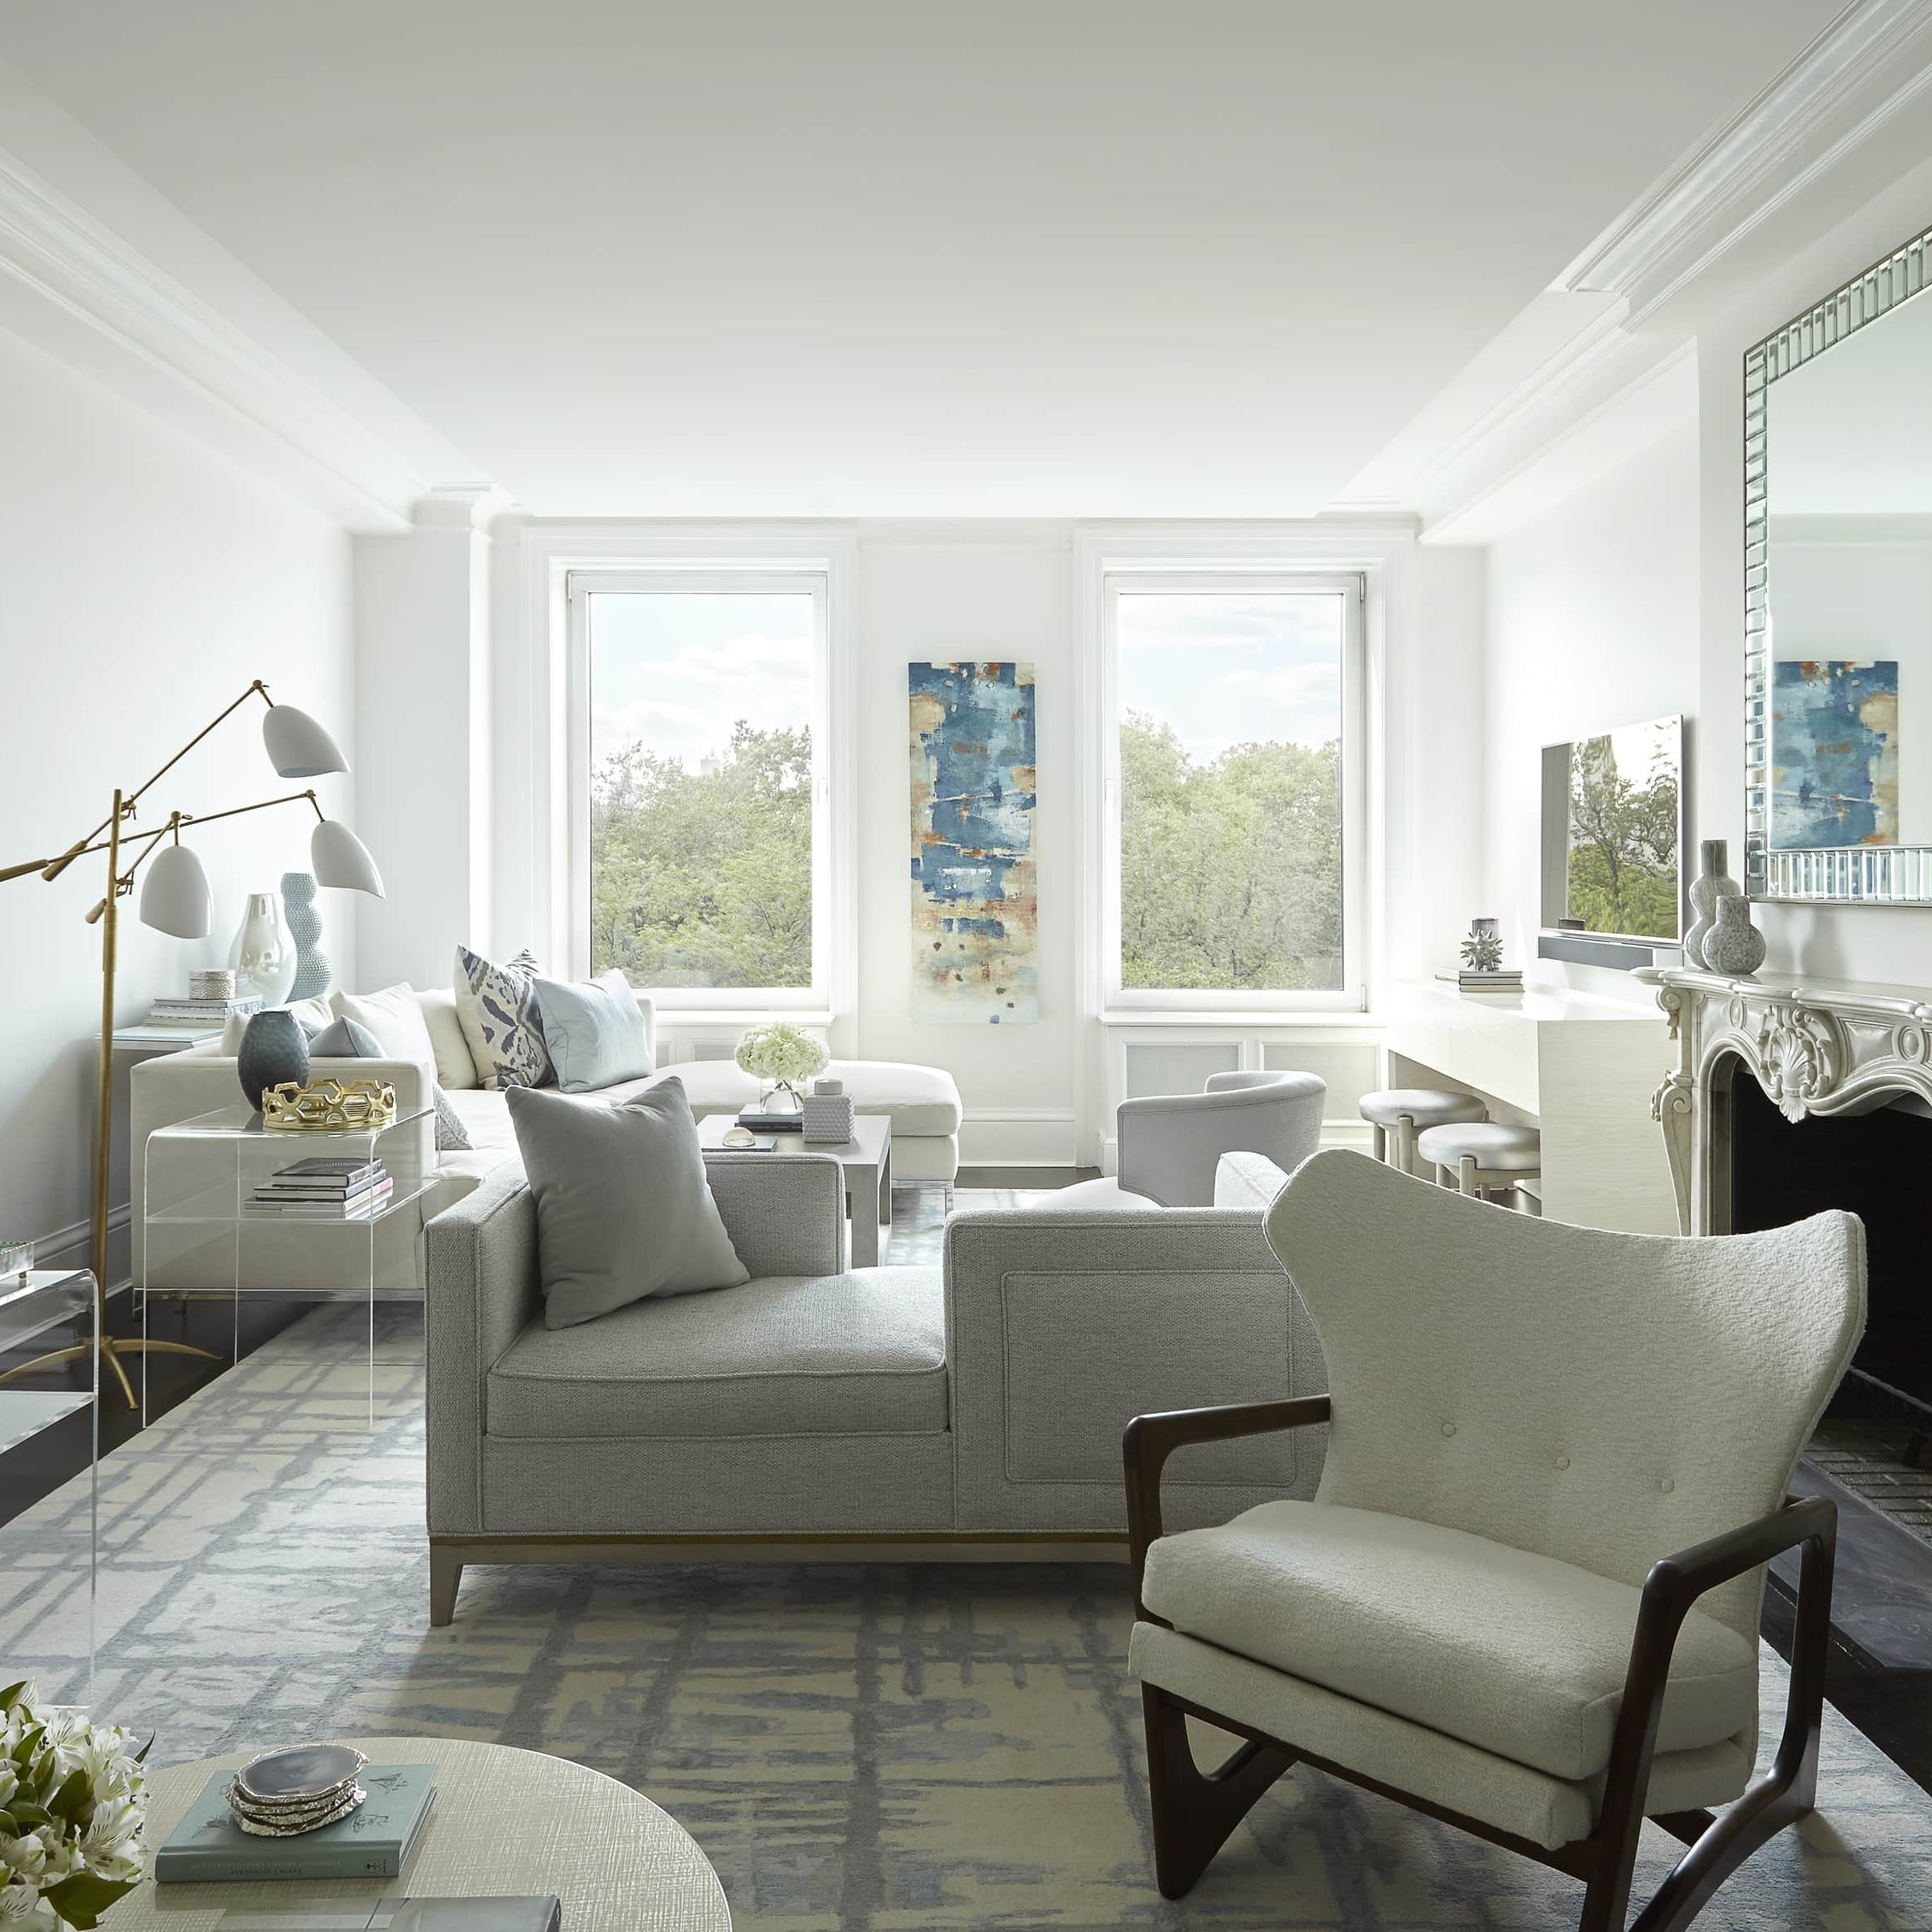 Mixed metals in the living room – Blog by Darci Hether New York